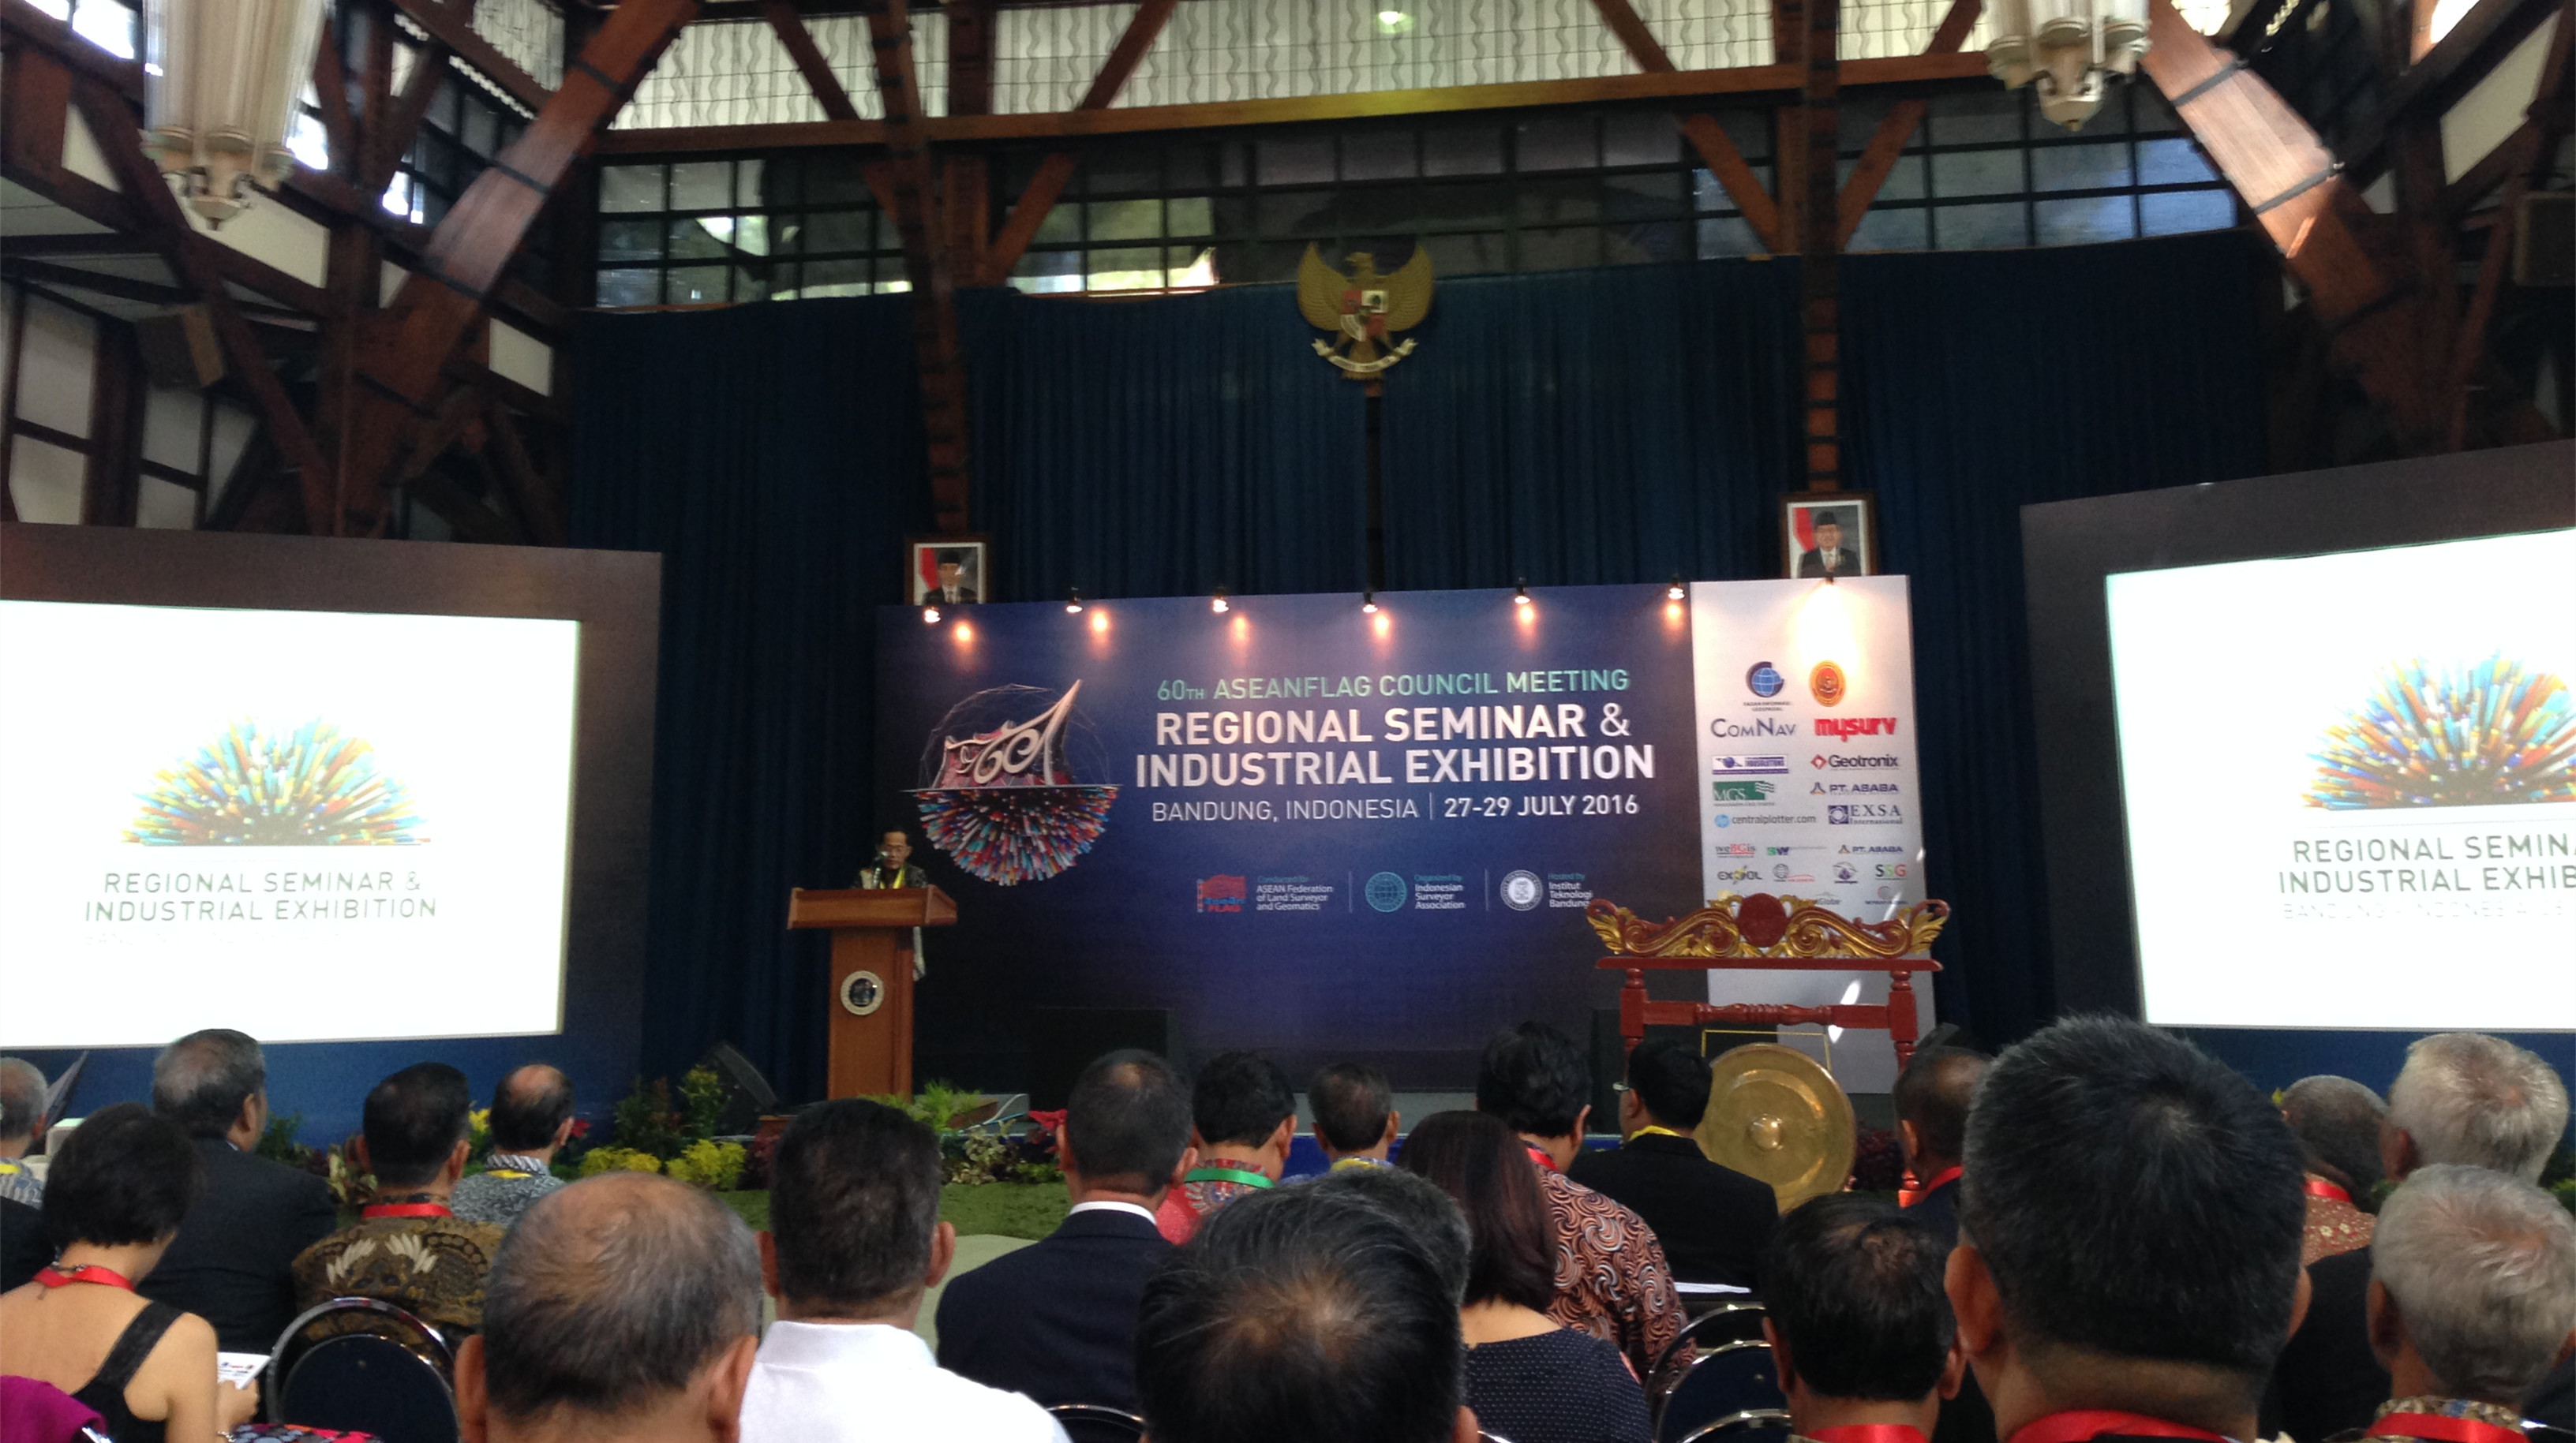 20160804054524866 - Hi-Target Attending the 60th ASEANFLAG Council Meeting & Regional Conference in Bandung Indonesia